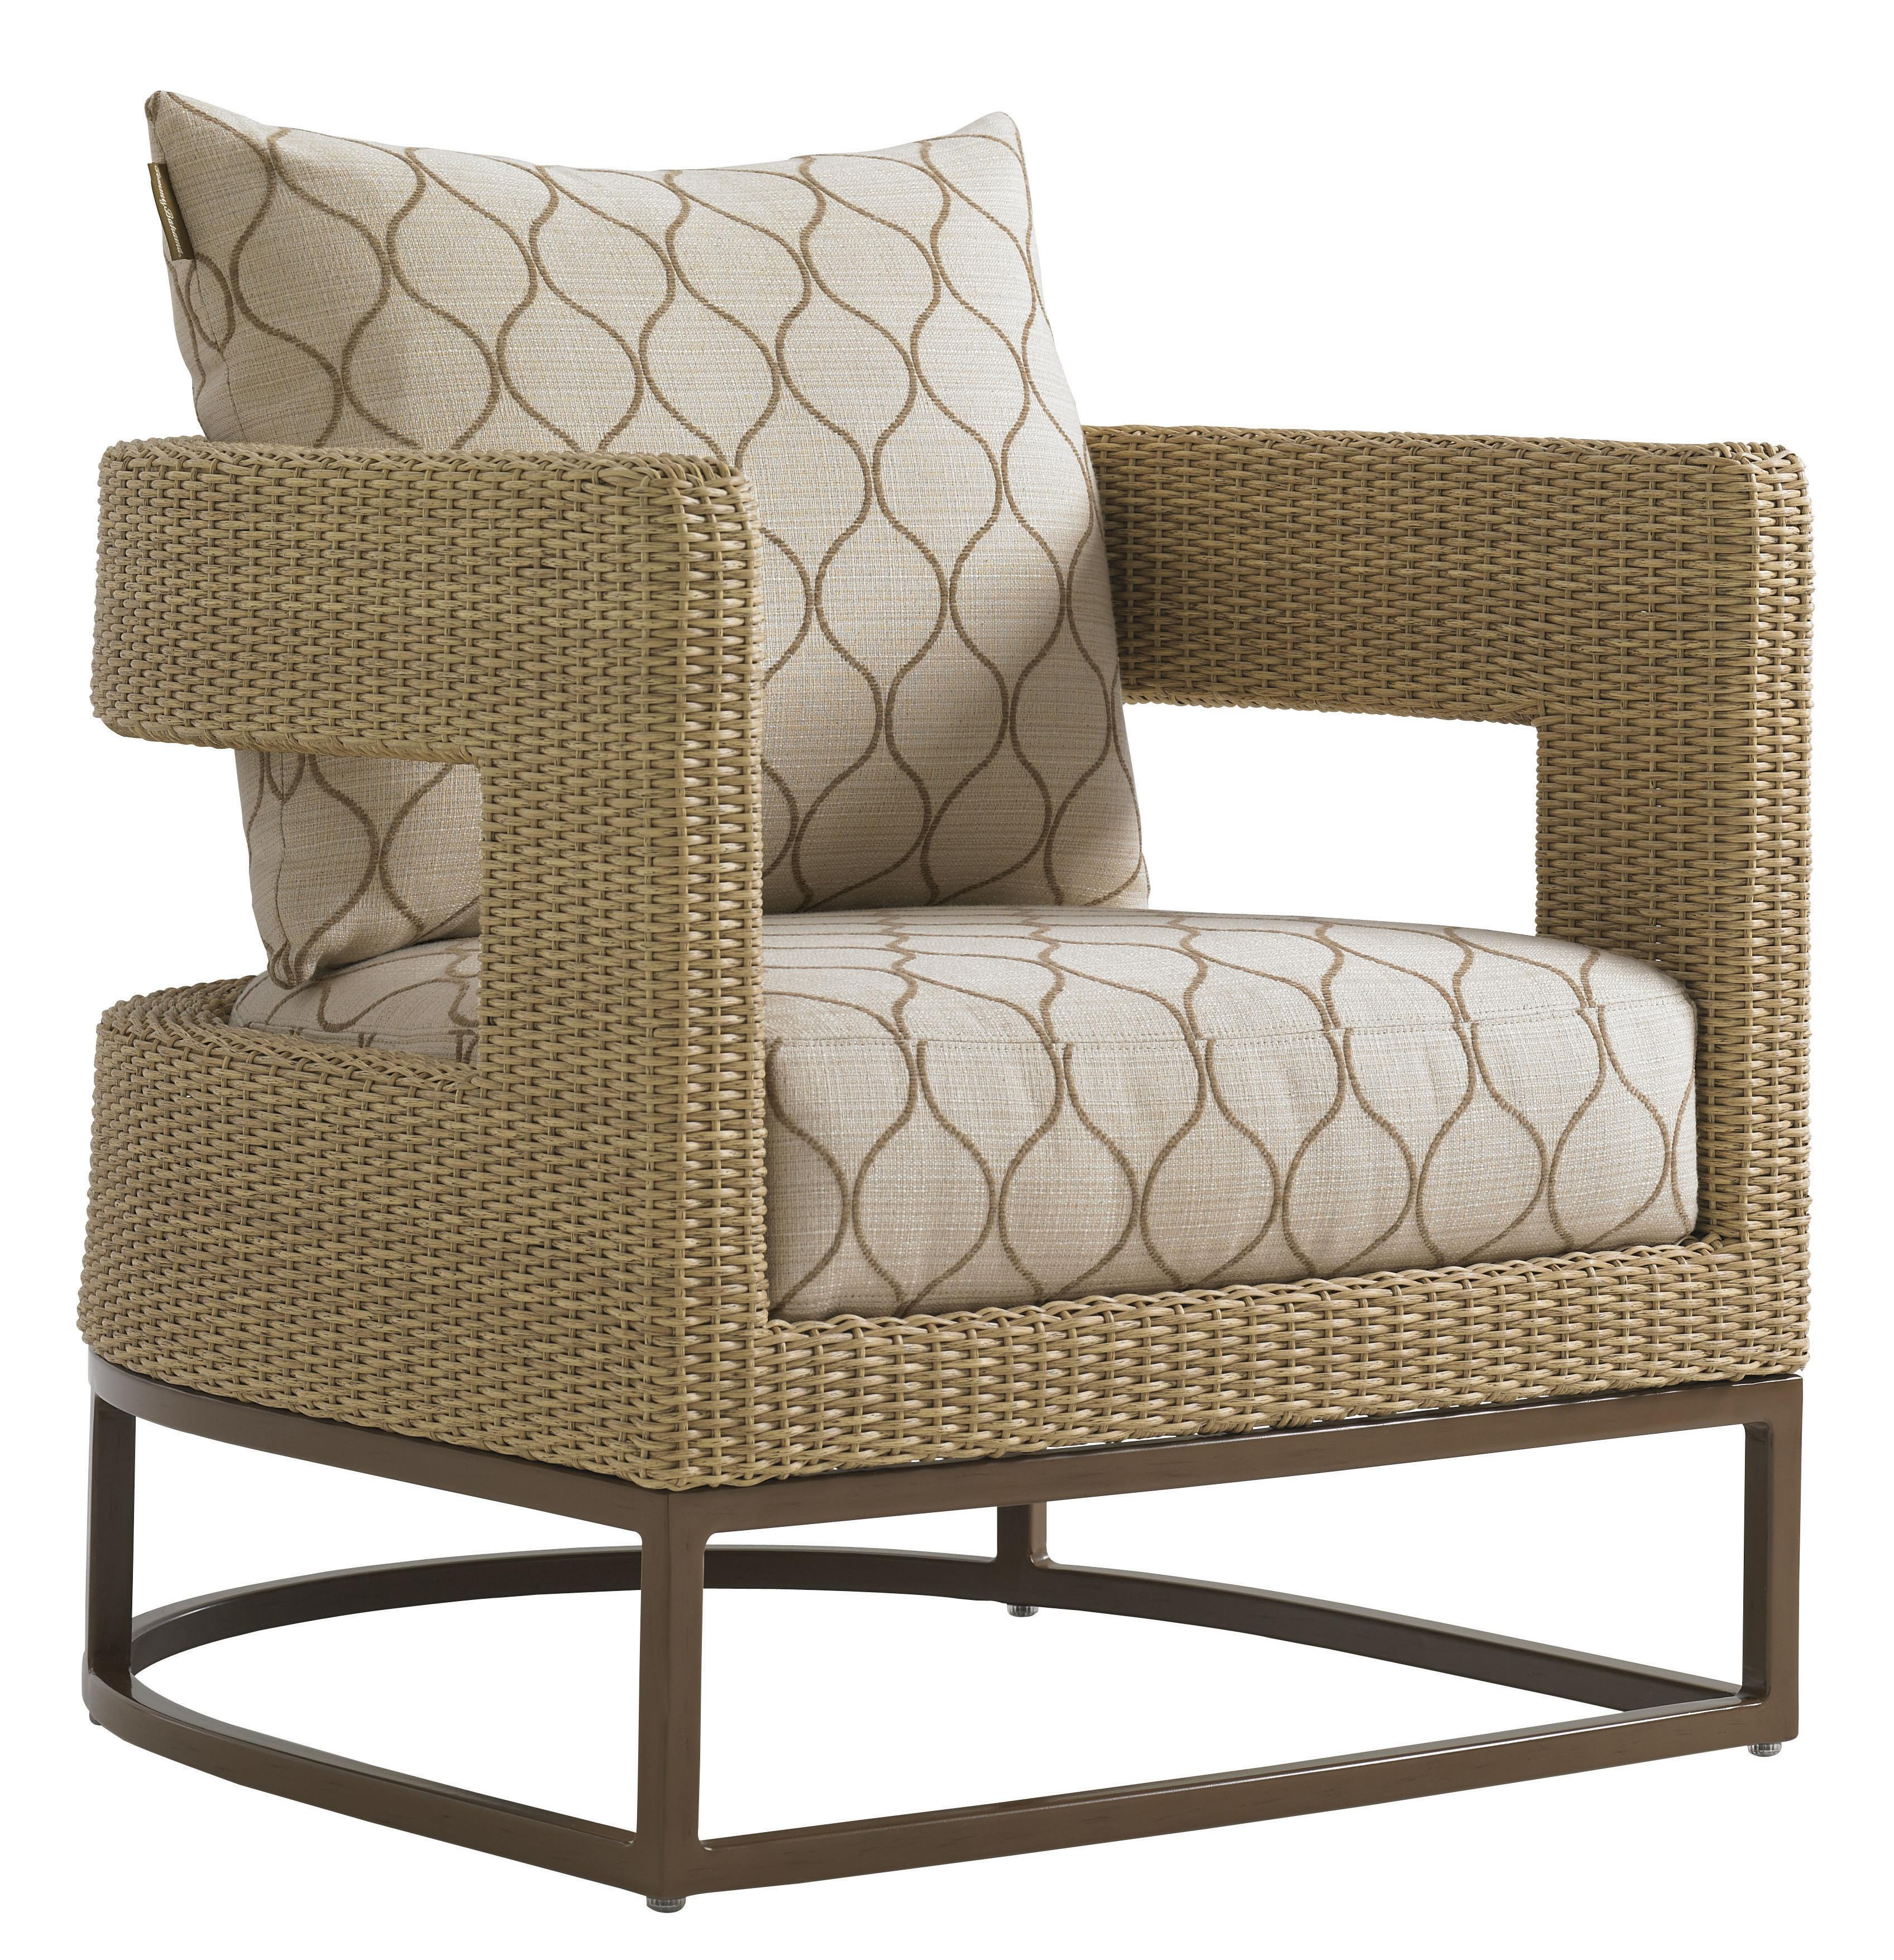 Tommy Bahama Outdoor Living Aviano Barrel Chair - Item Number: 3220-11+CS3220-11